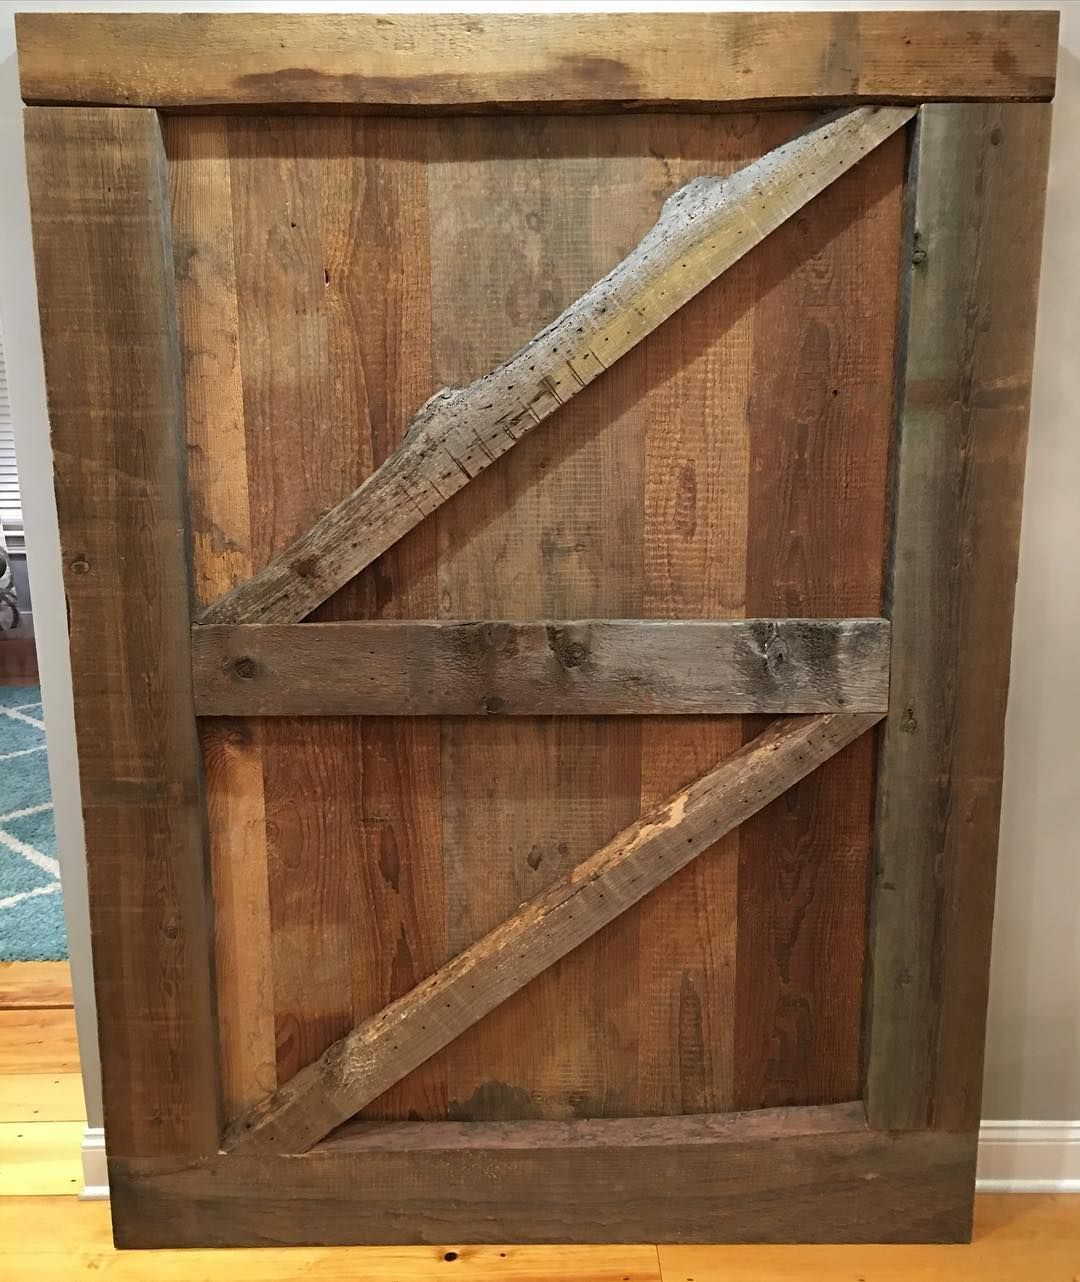 hereu0027s a closer look at our gorgeous double zbrace barn door made from reclaimed wood